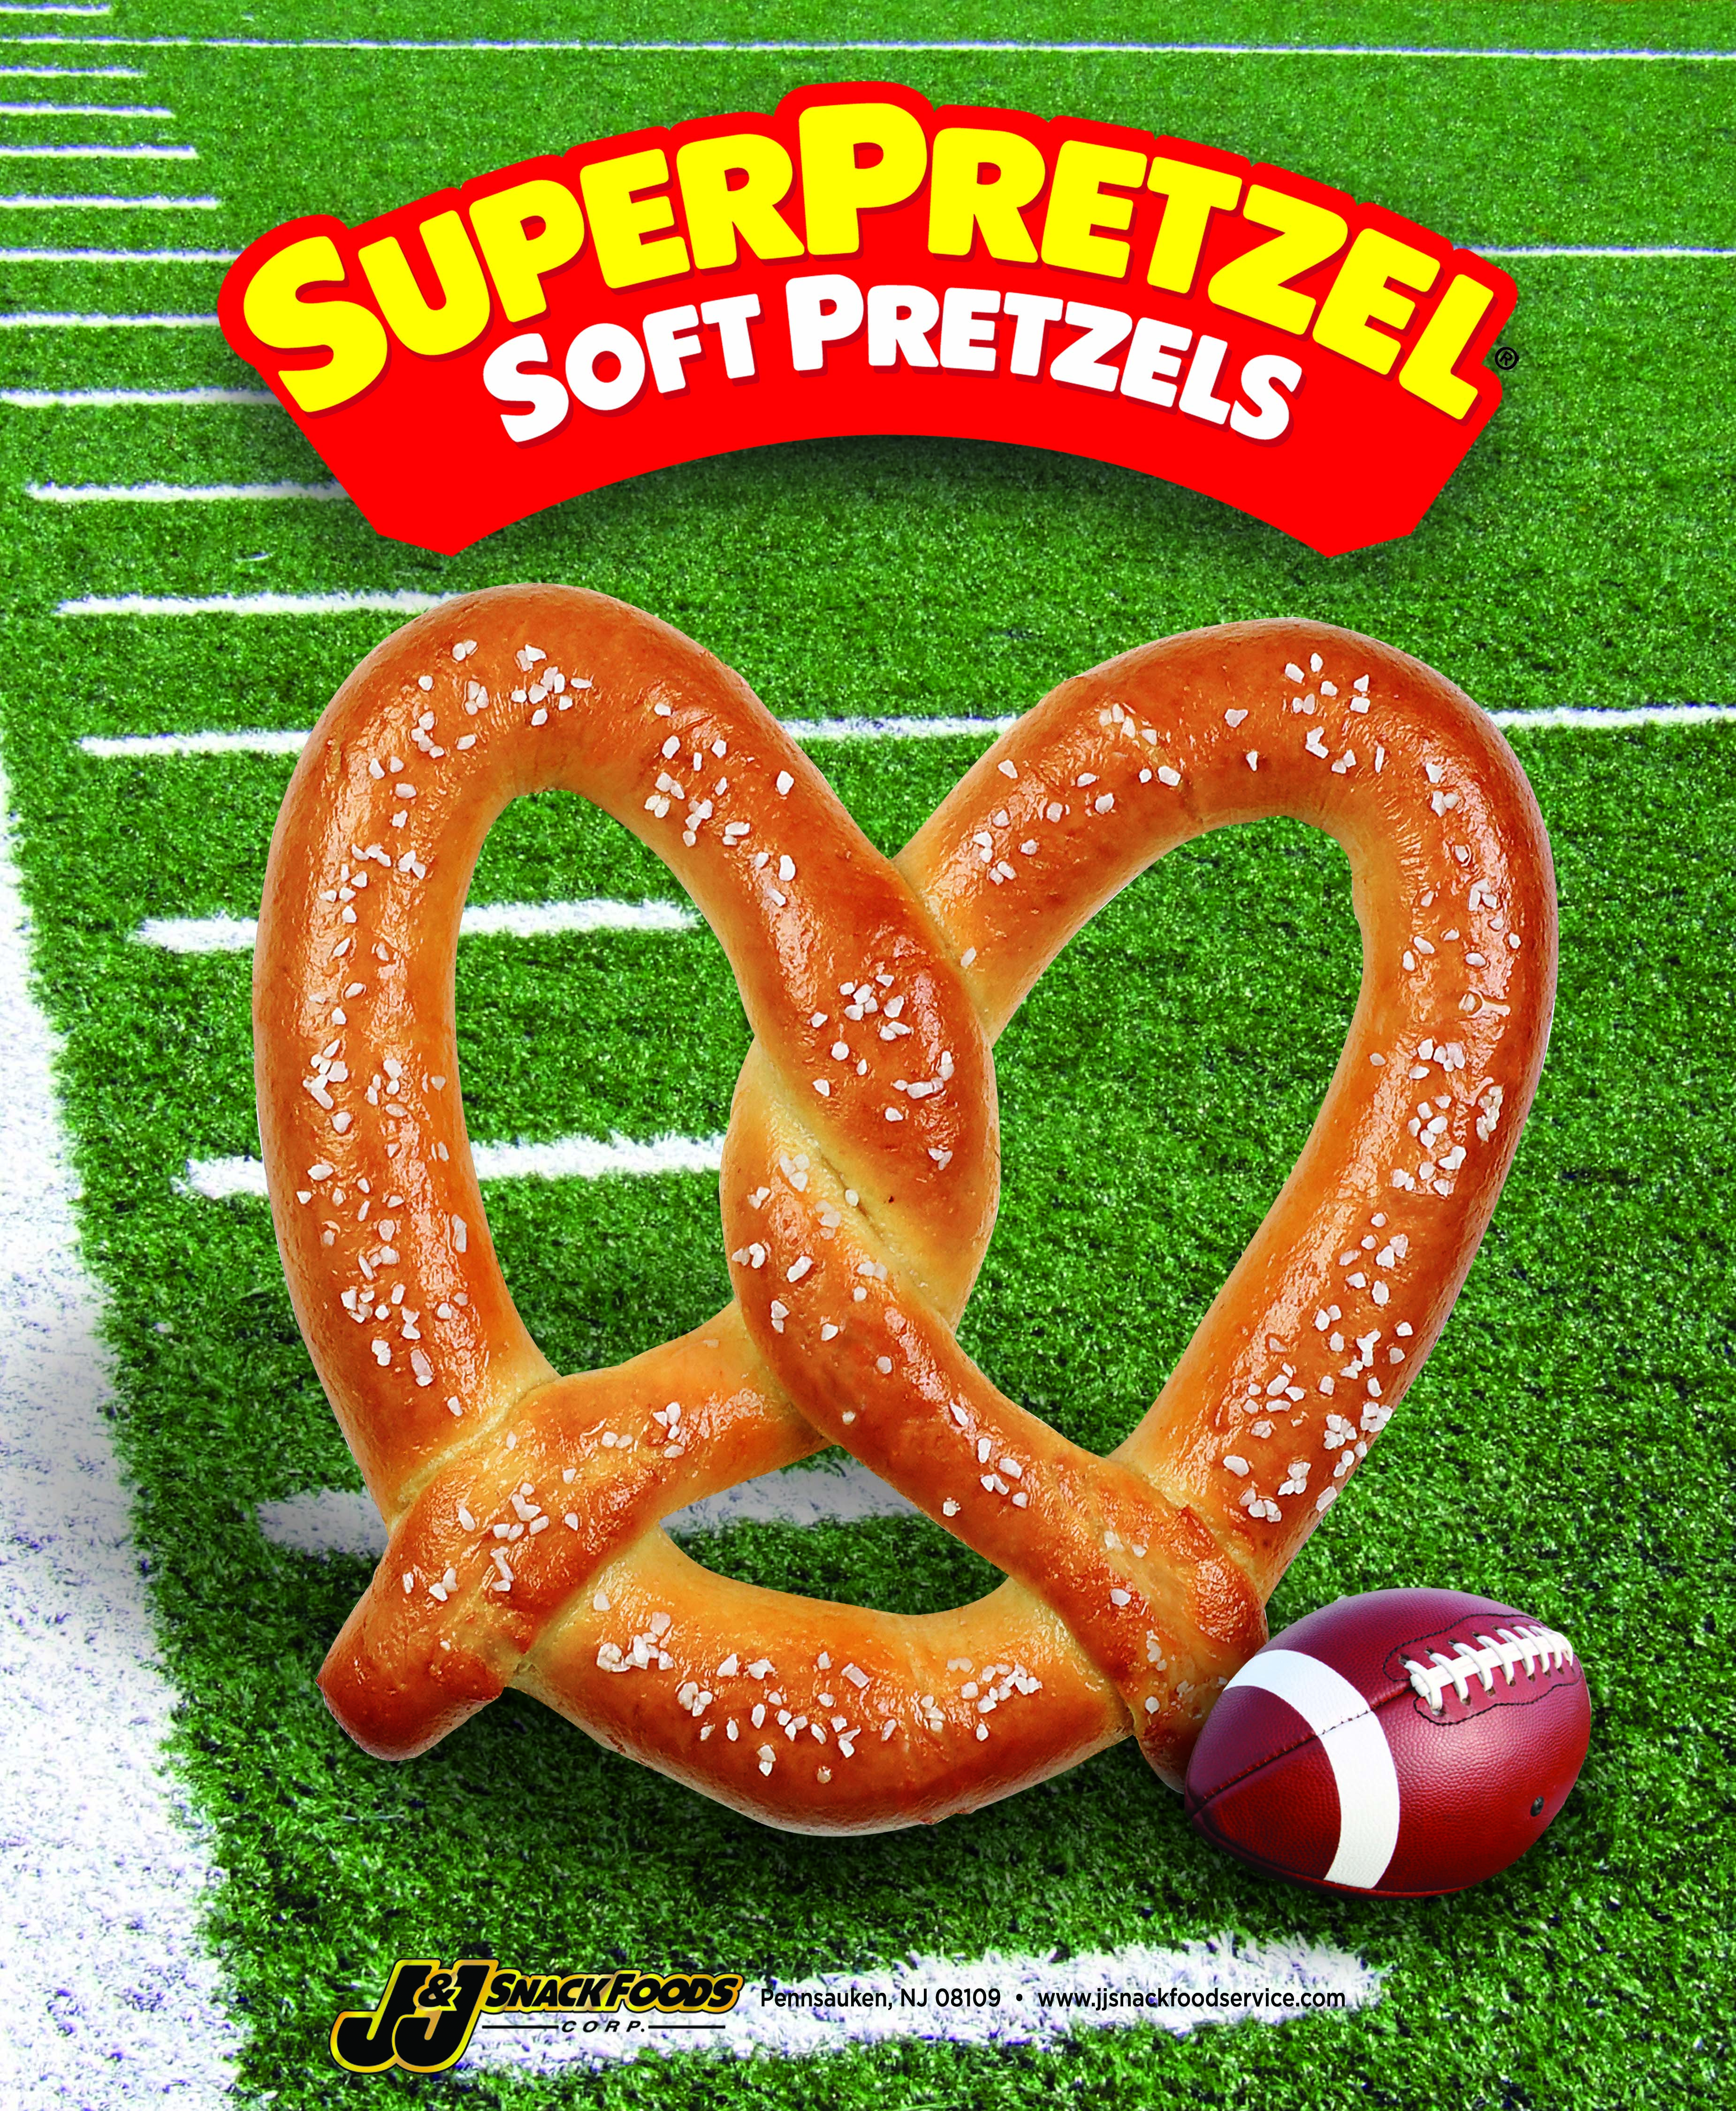 SUPERPRETZEL® Soft Pretzel King Size Football Themed Poster